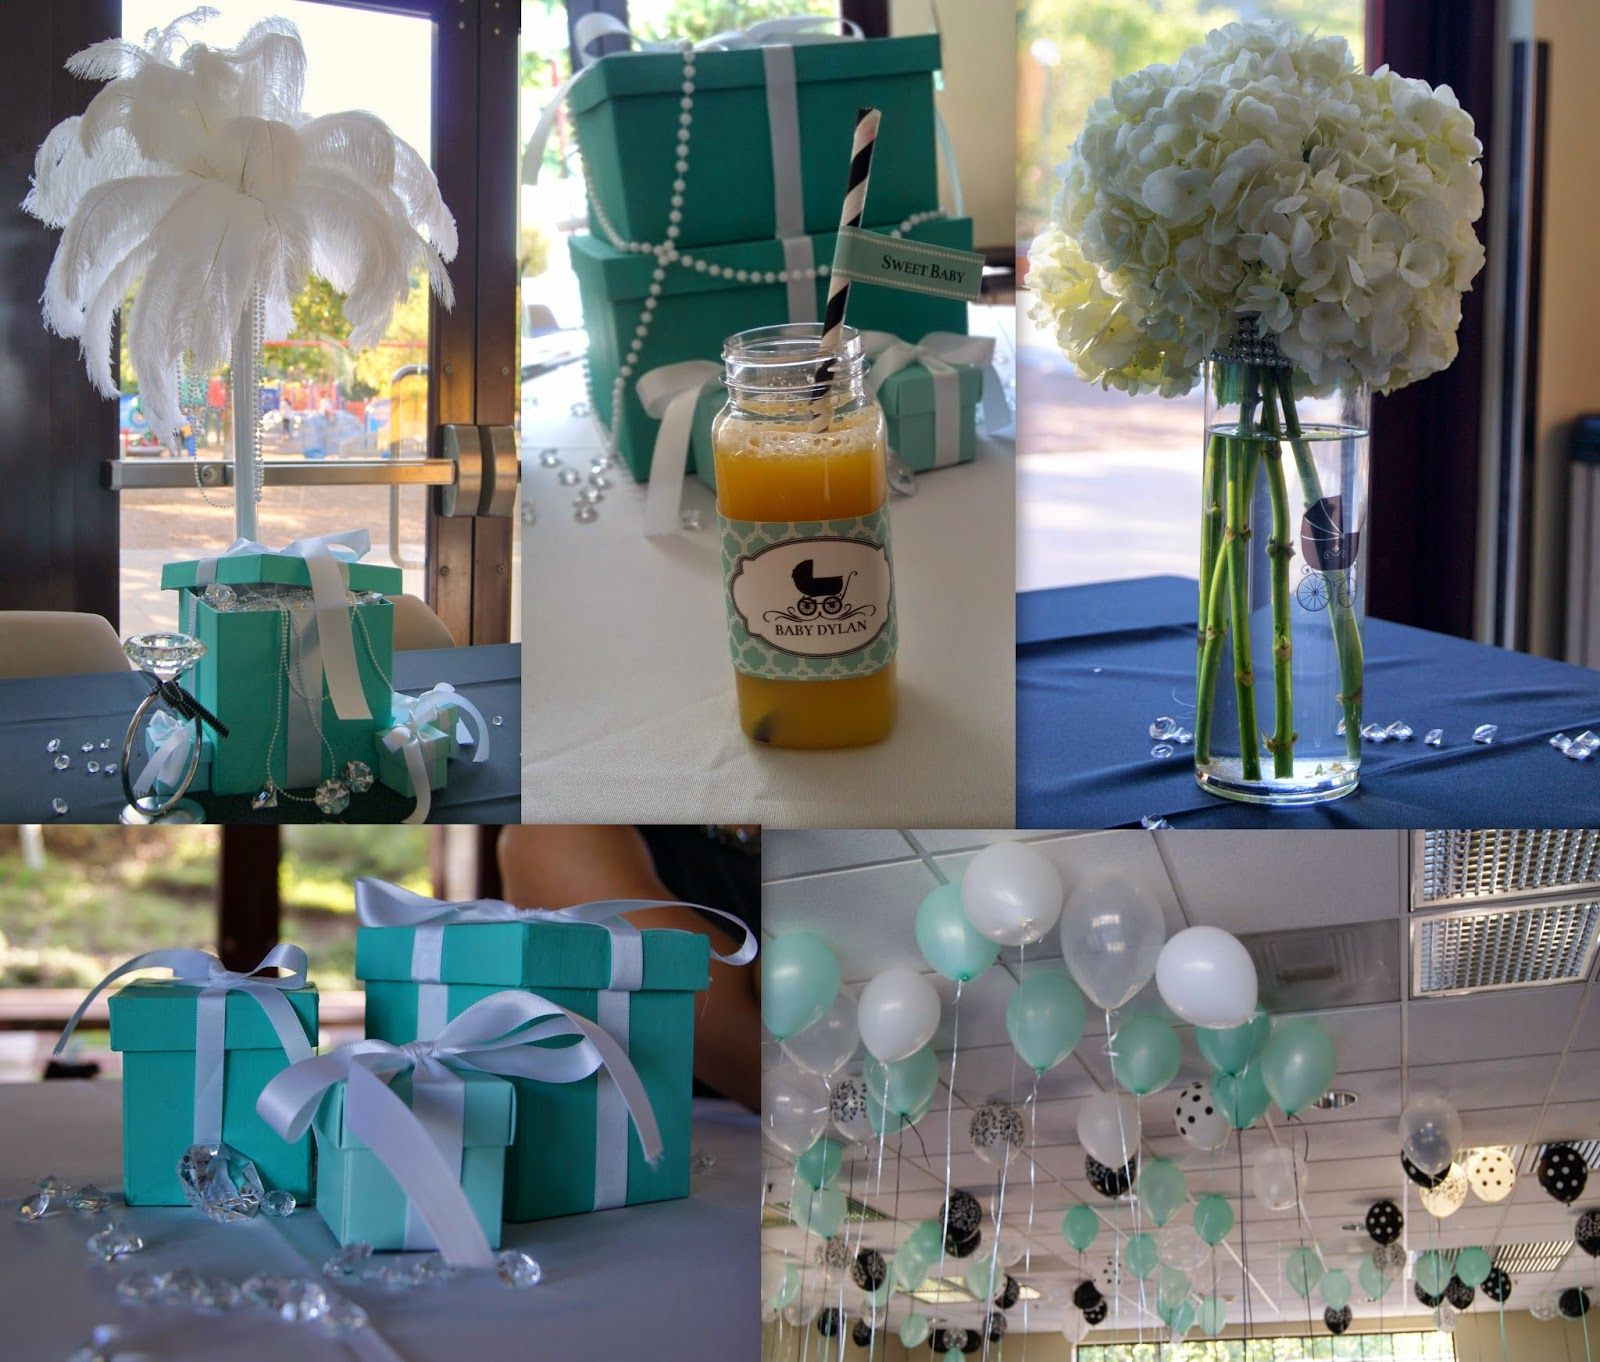 Baby Amp Co Theme Breakfast At Tiffany Decor By Www